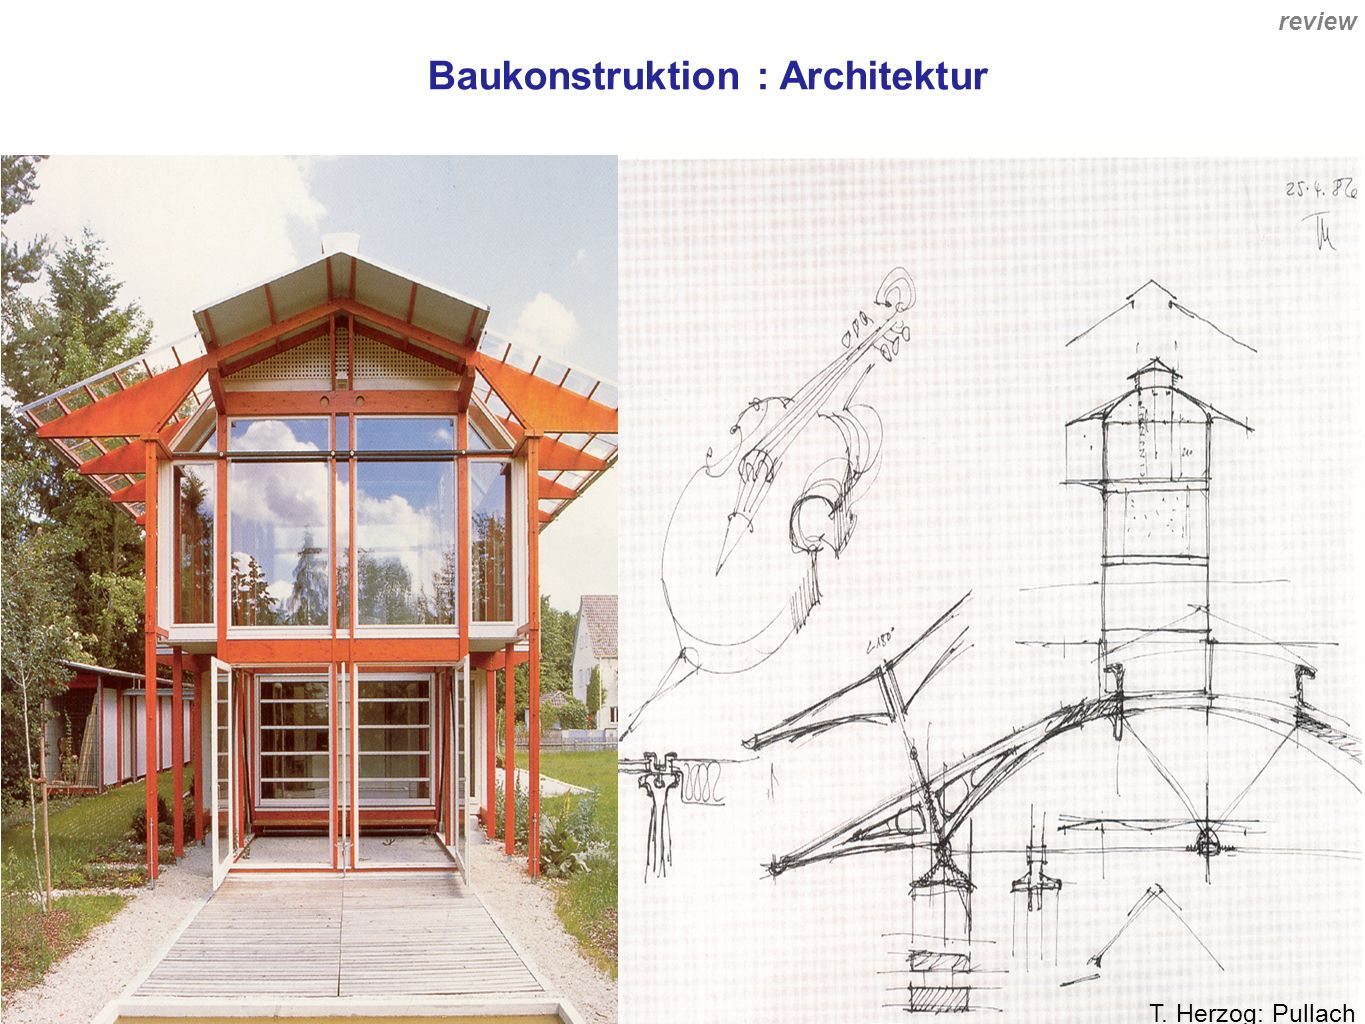 Baukonstruktion : Architektur T. Herzog: Pullach review